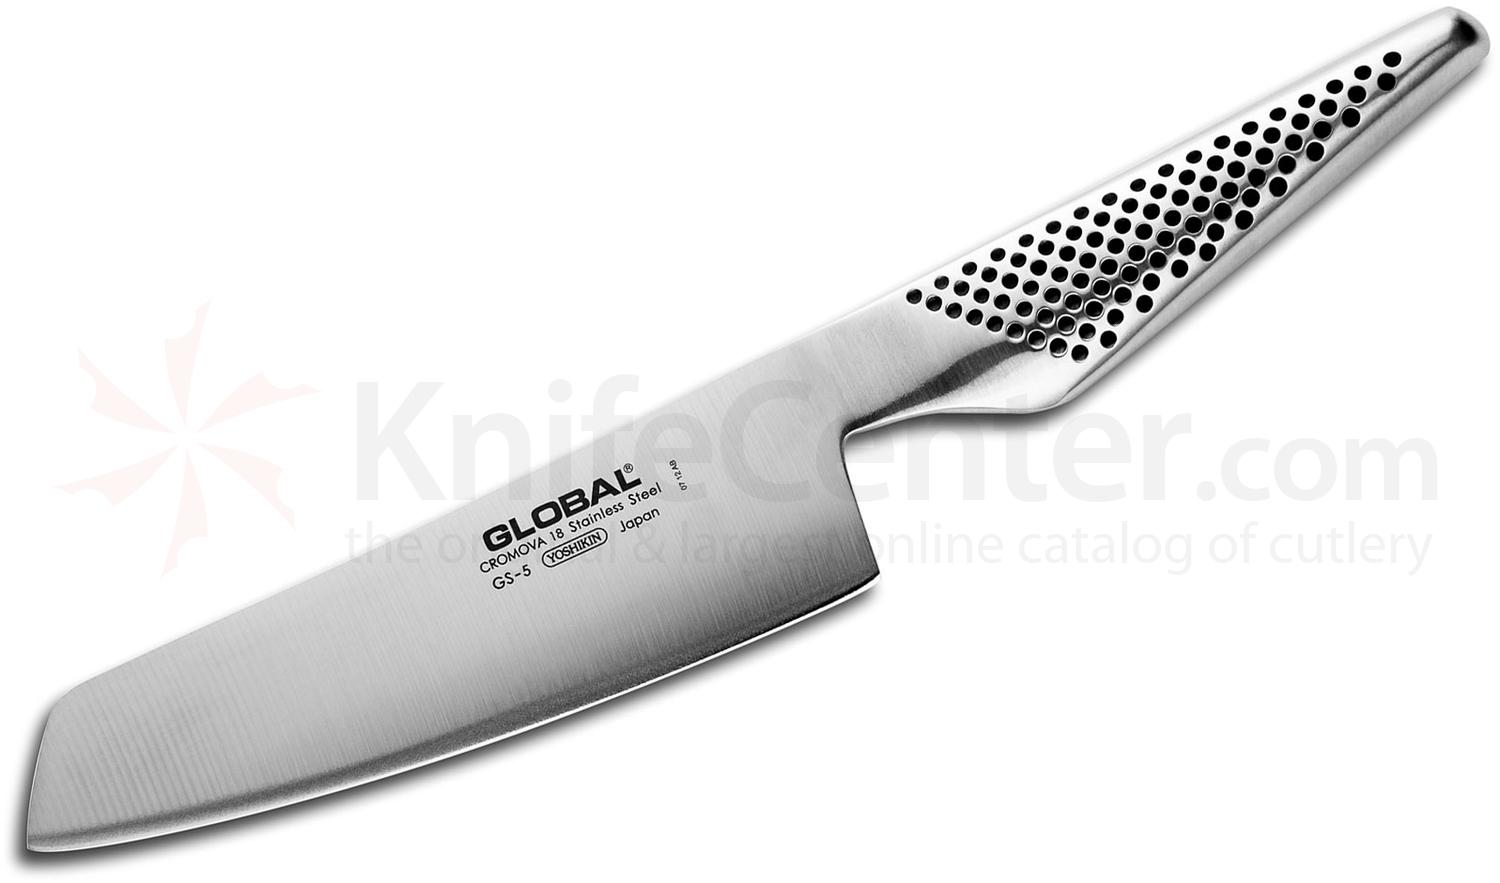 global kitchen knives remodeling williamsburg va gs 5 quot vegetable knife knifecenter